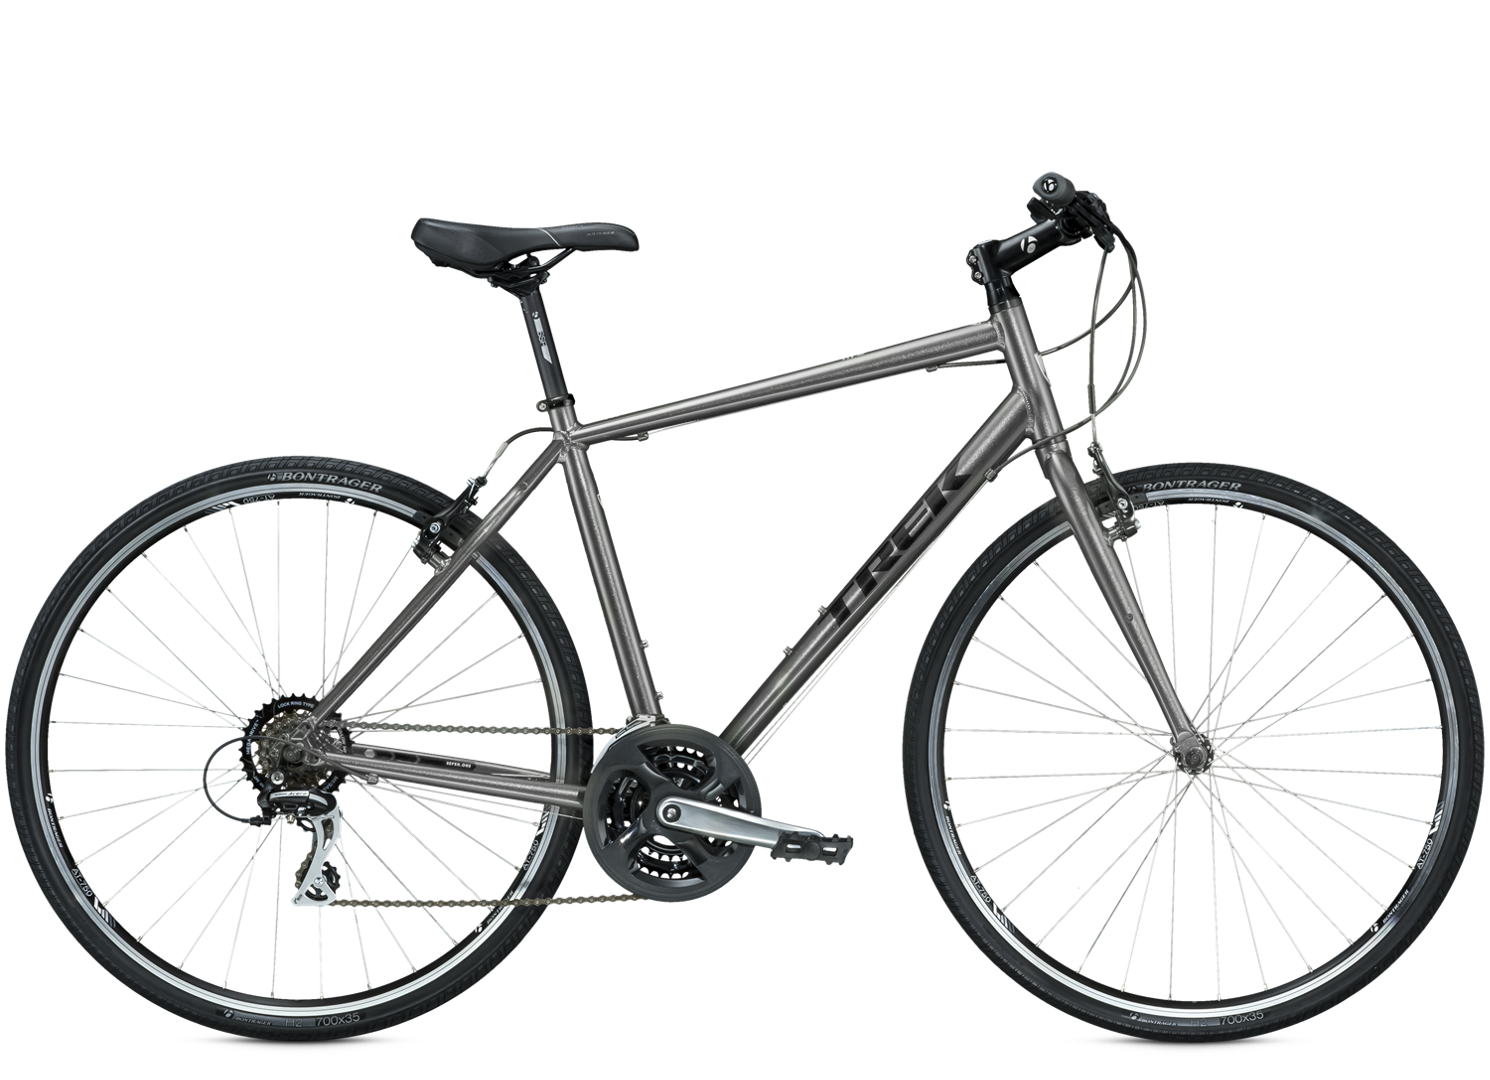 7 1 Fx Trek Bicycle My Brother S Bike That He Loves And